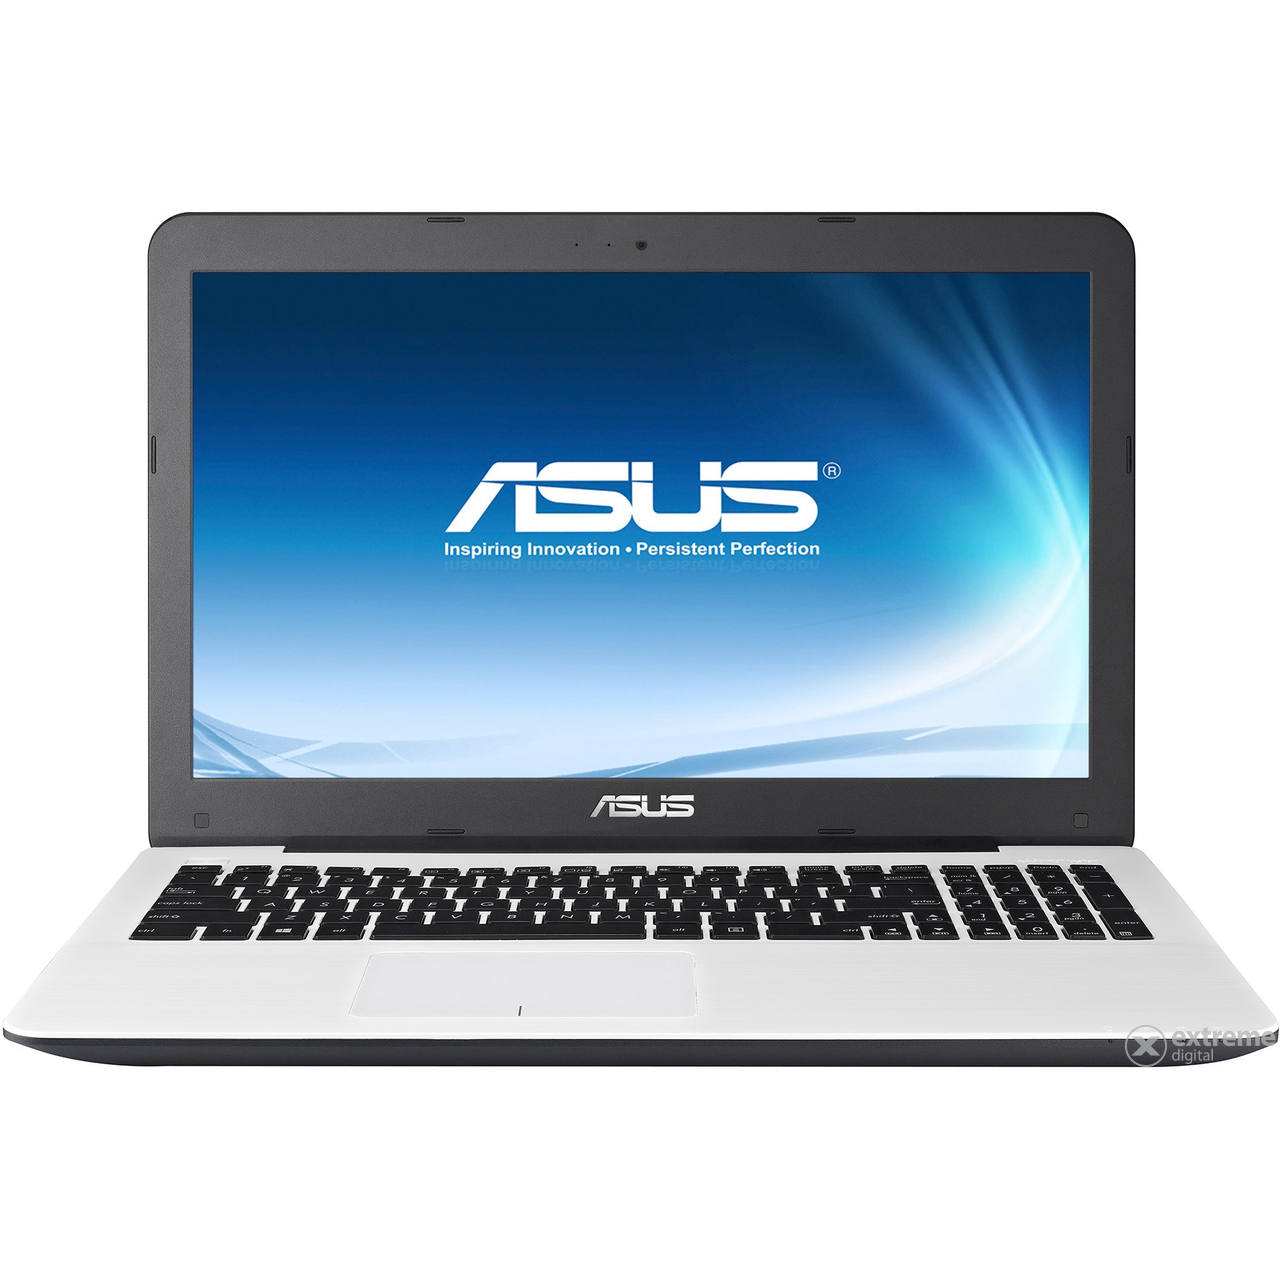 asus-x554lj-xo502t-notebook-windows-10-feher_29369919.jpg